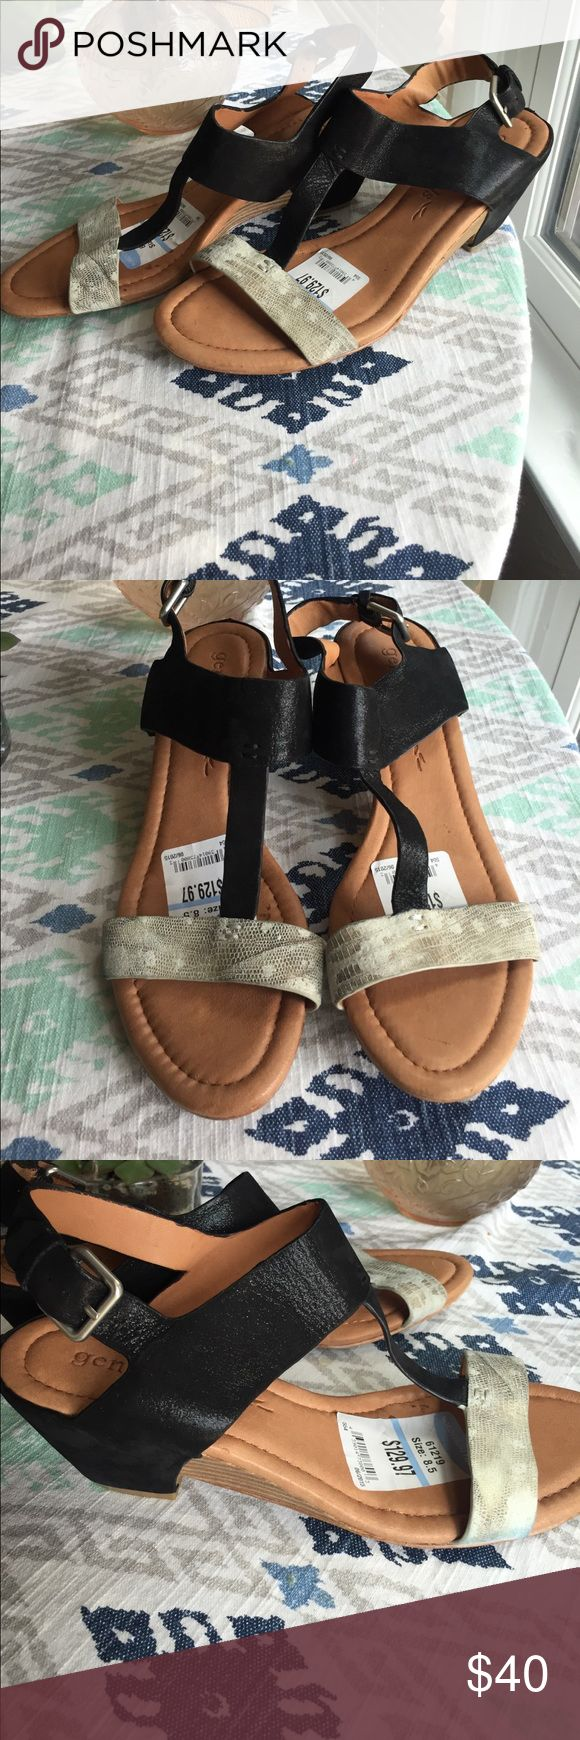 SALE! Gentle Souls wedges Gentle Souls wedges. Size 8.5. Leather. Top has a slight metallic sheen and the bottom strap has a suede and animal skin look. The side has a bit of blue dye that has rubbed on one side. Price reflects and shown in pic three. Otherwise in great condition. Nordstrom Shoes Wedges